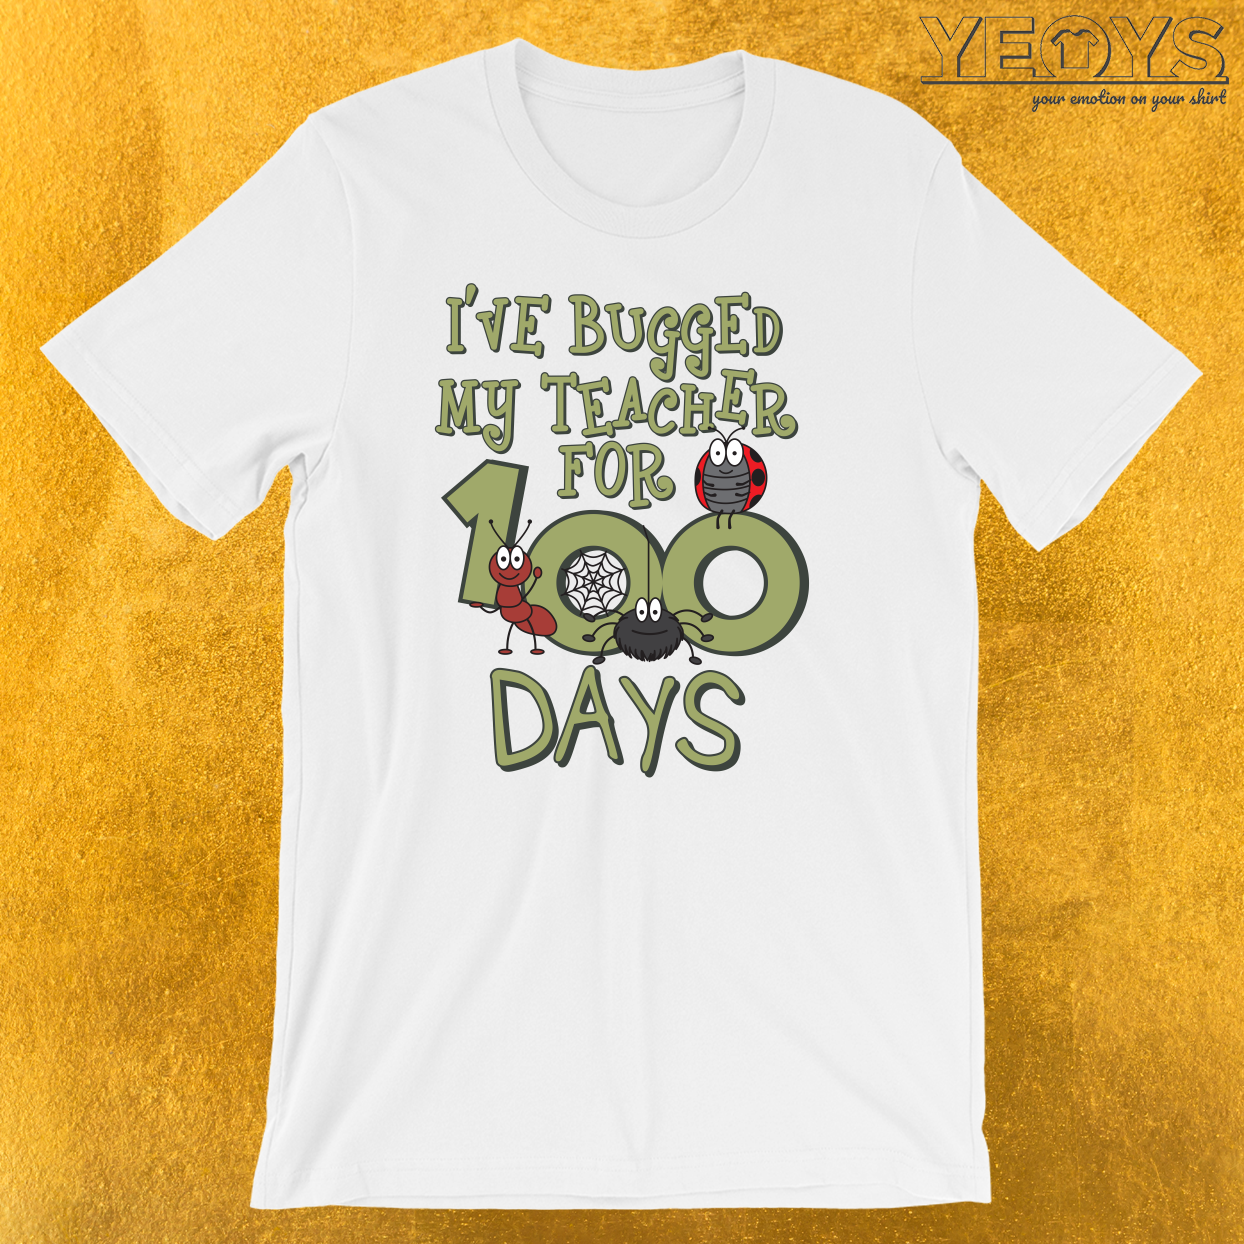 I've Bugged My Teacher For 100 Days T-Shirt